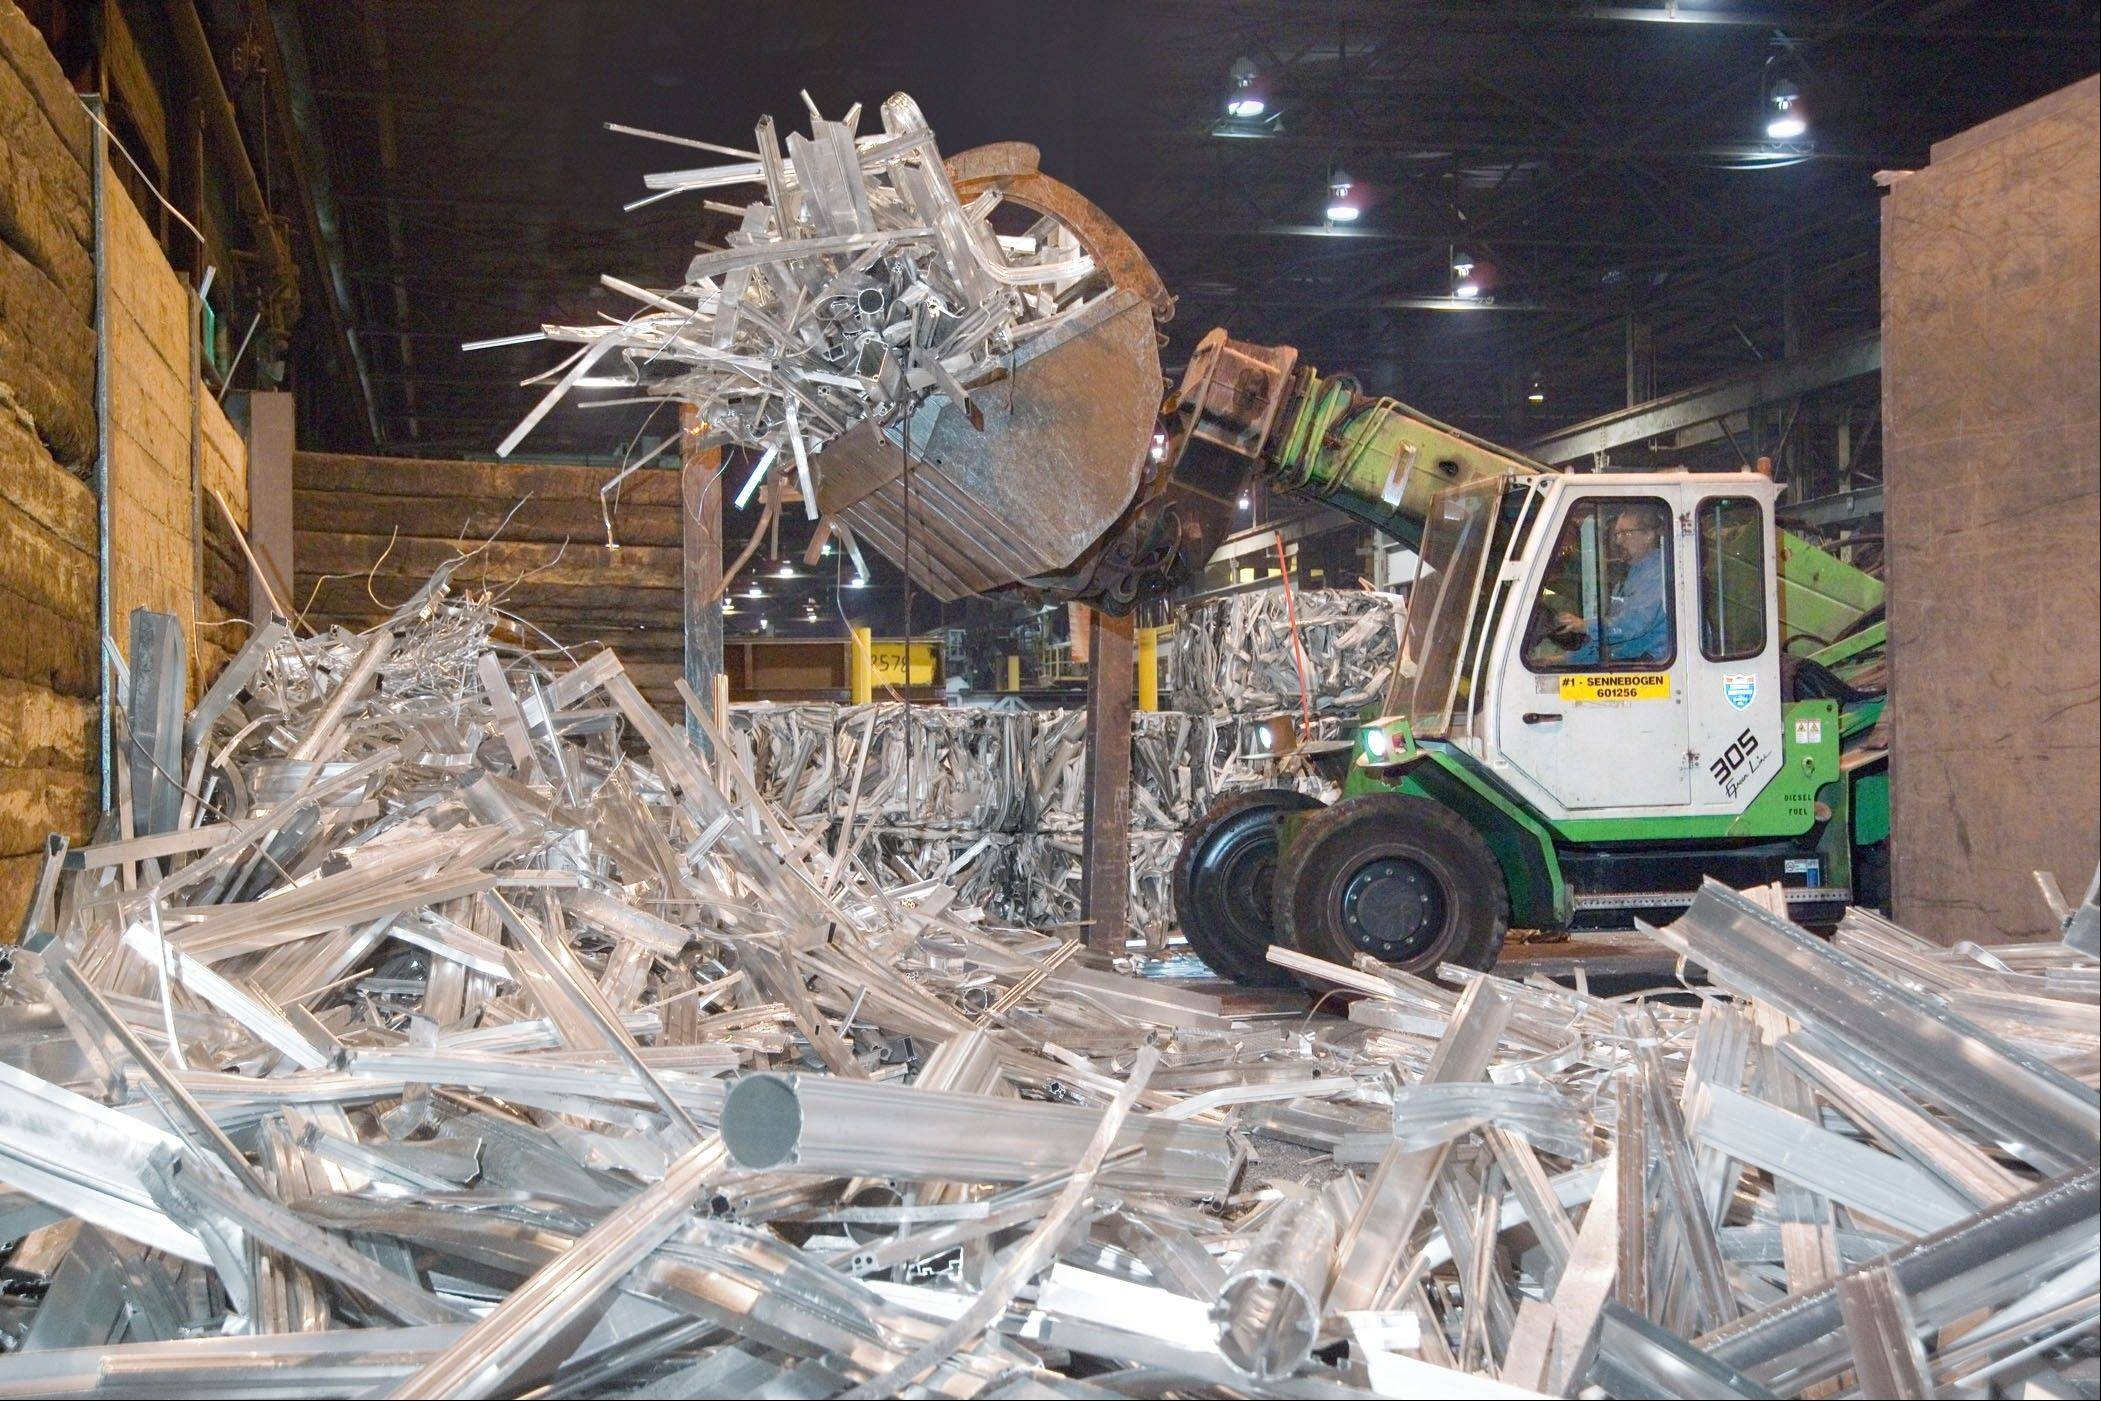 One of the advantages of aluminum is that all this scrap is being recycled in a Pennsylvania plant run by Sapa Extrusions, which is headquartered in Rosemont.